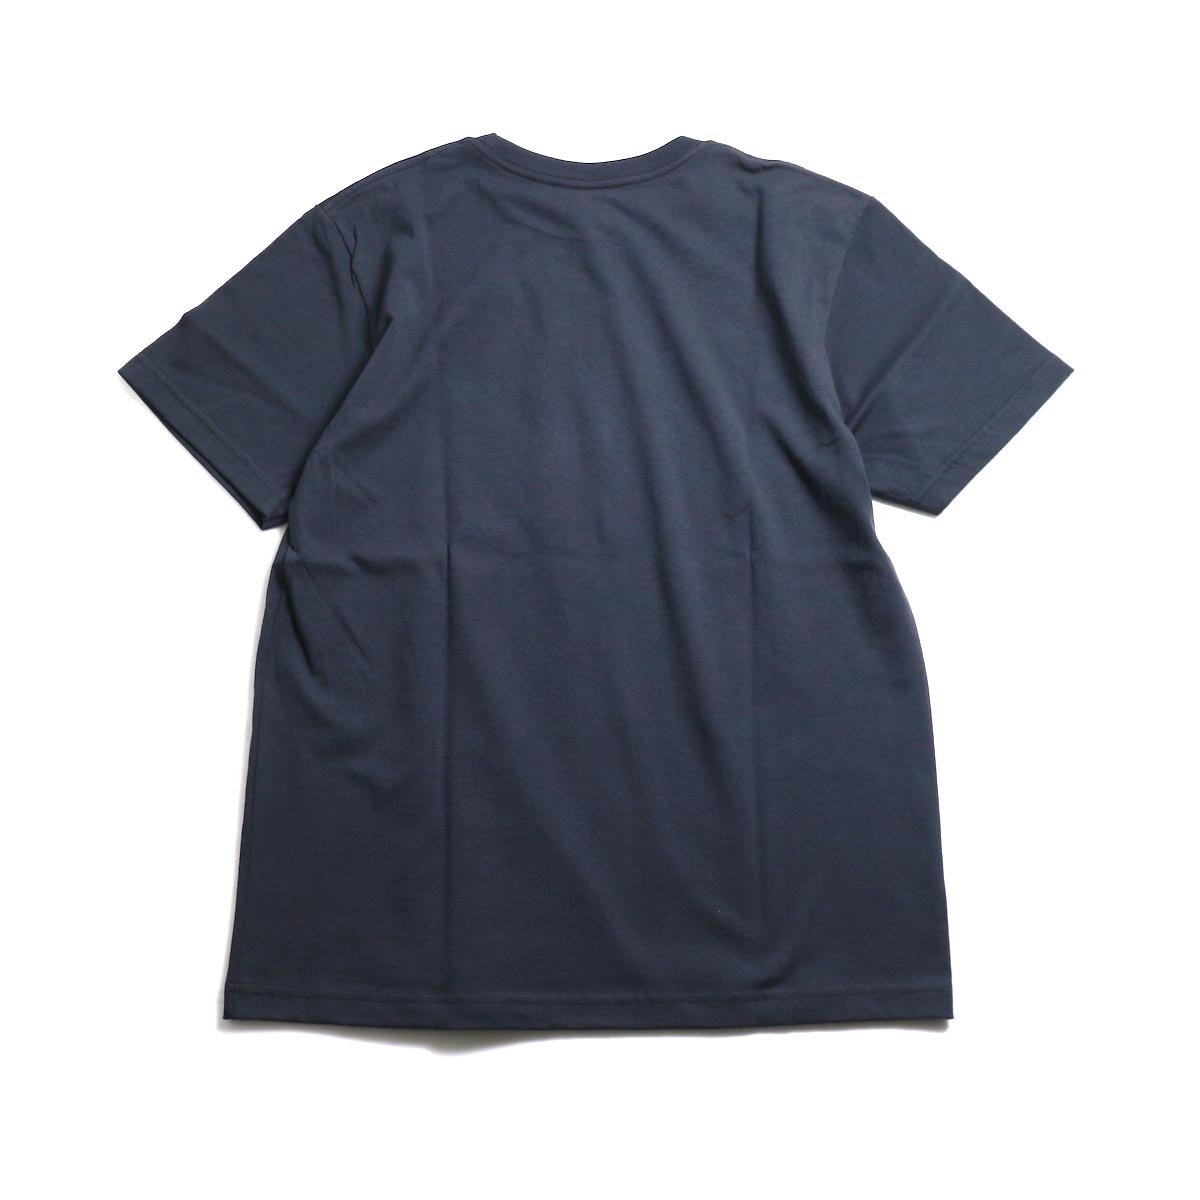 A.P.C. / Tremaine Tシャツ 背面